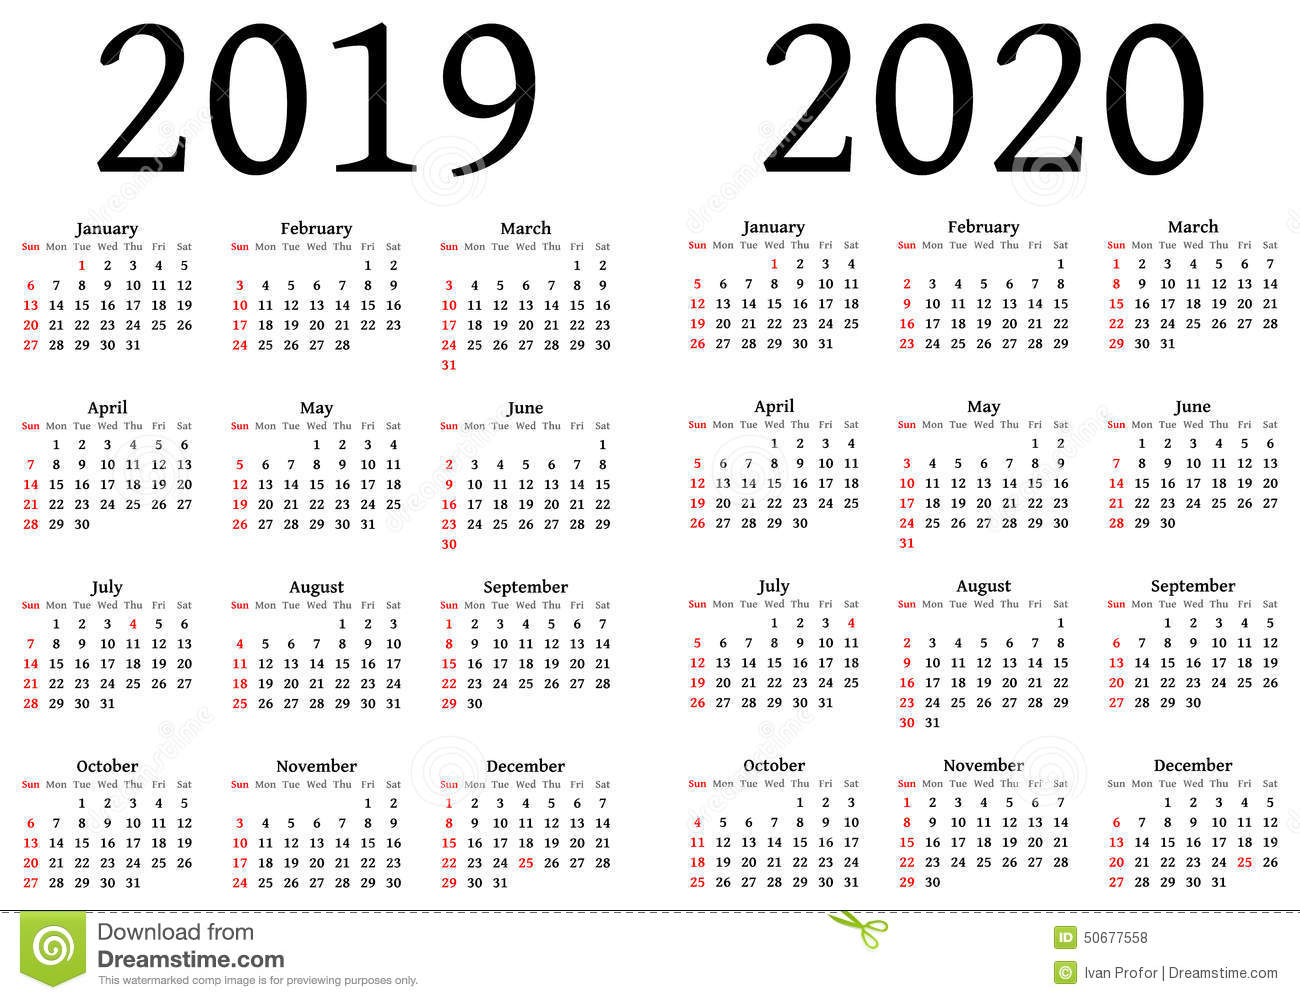 Printable Calendar For 2019 And 2020 | Printable Calendar 2019 with Printable Calendar 2020 That You Can Type In